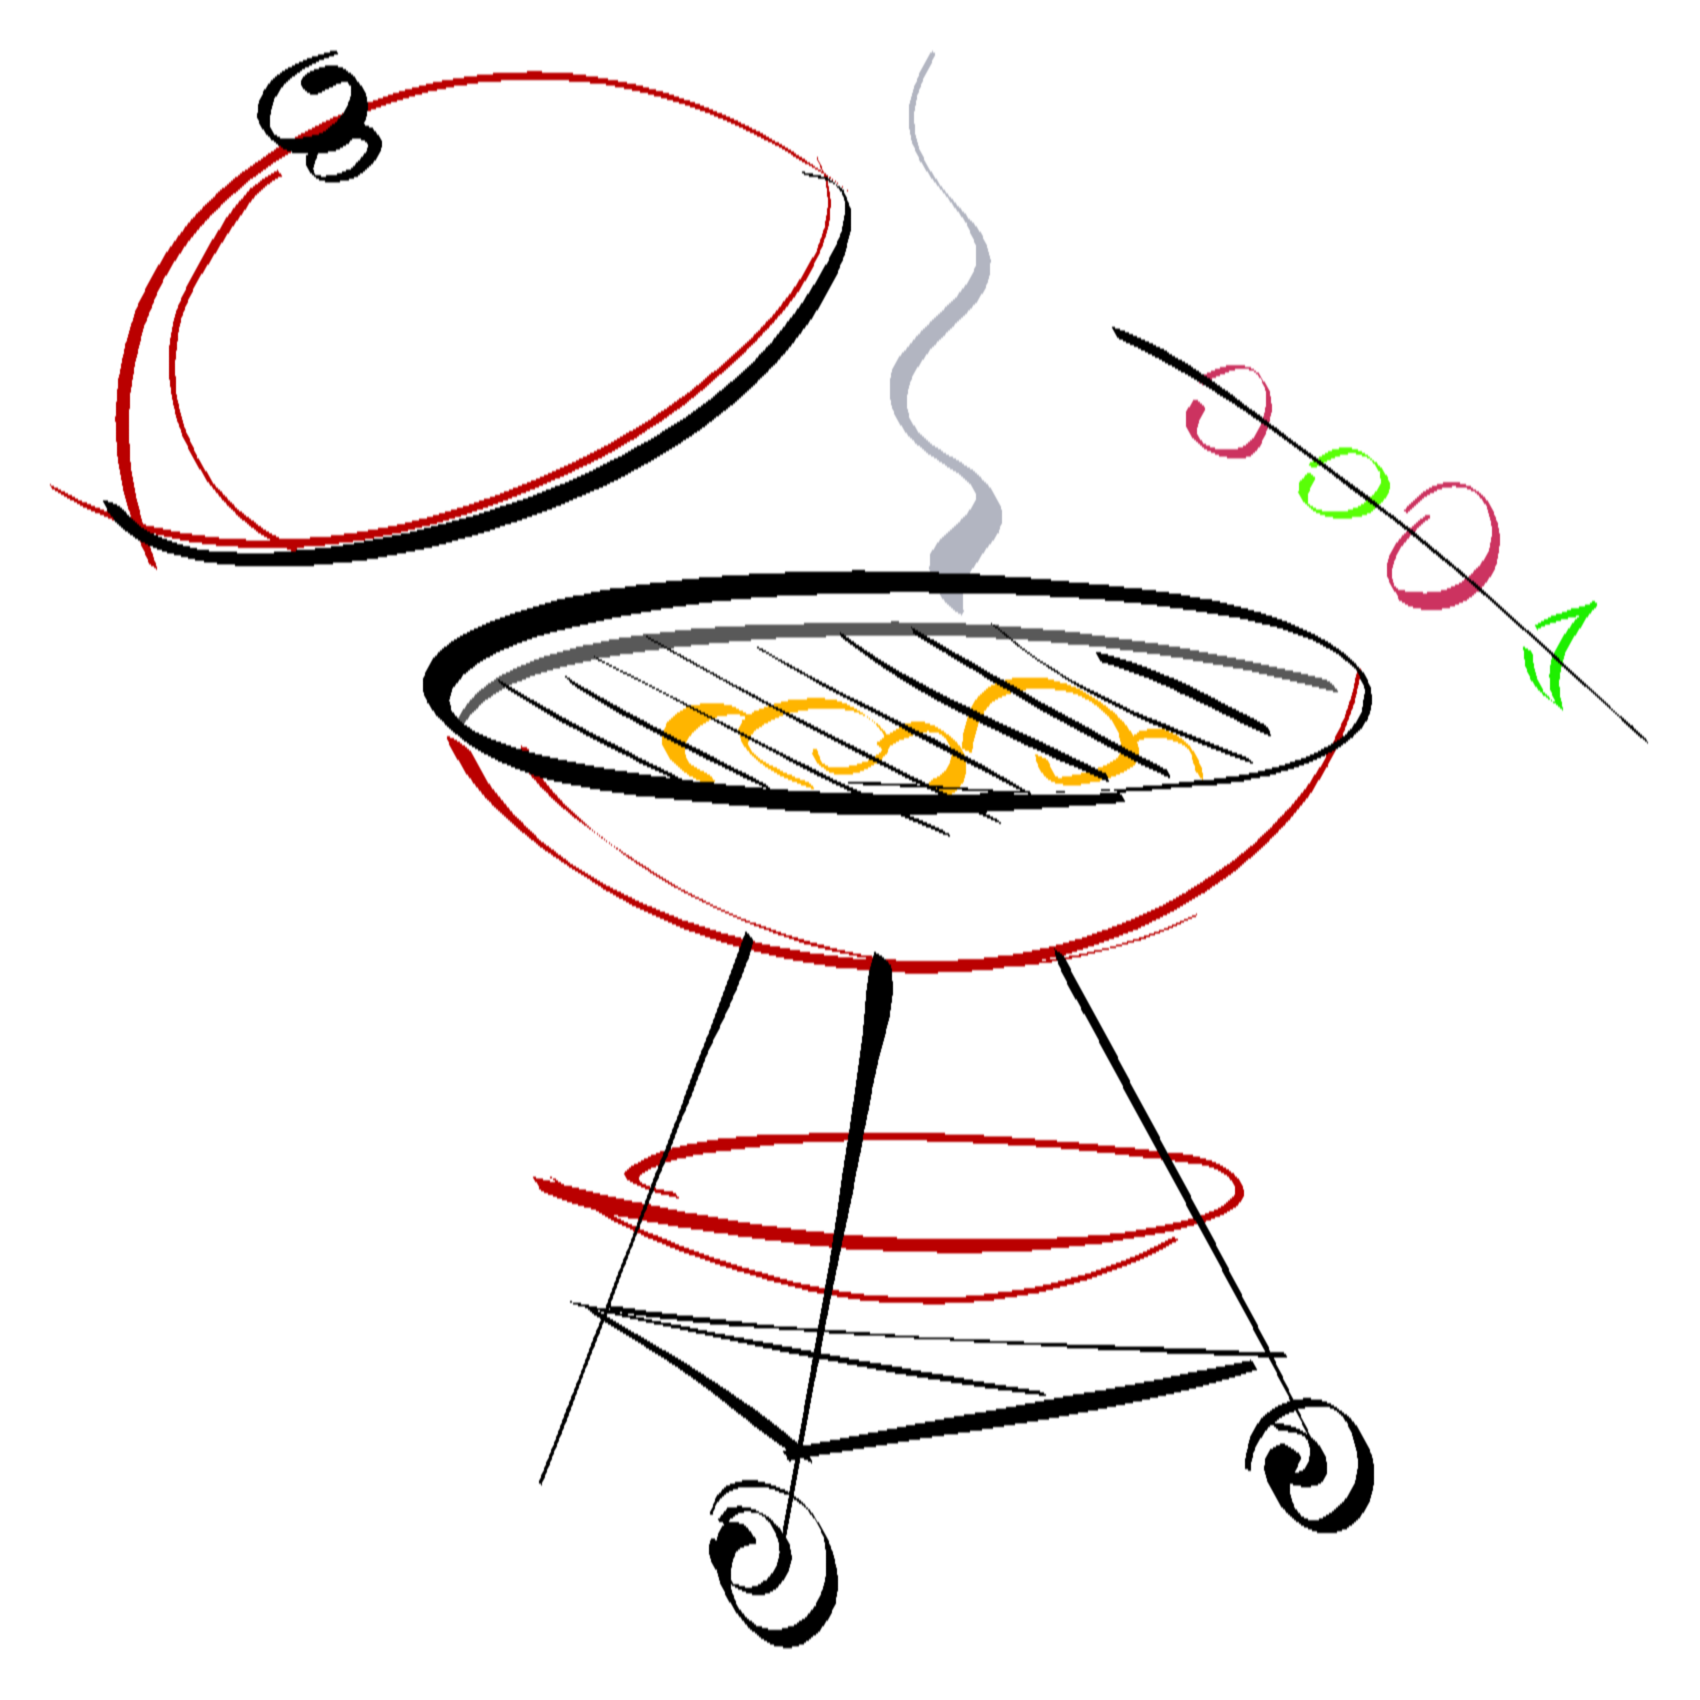 banner library download Bbq drawing at getdrawings. Grill clipart drawn